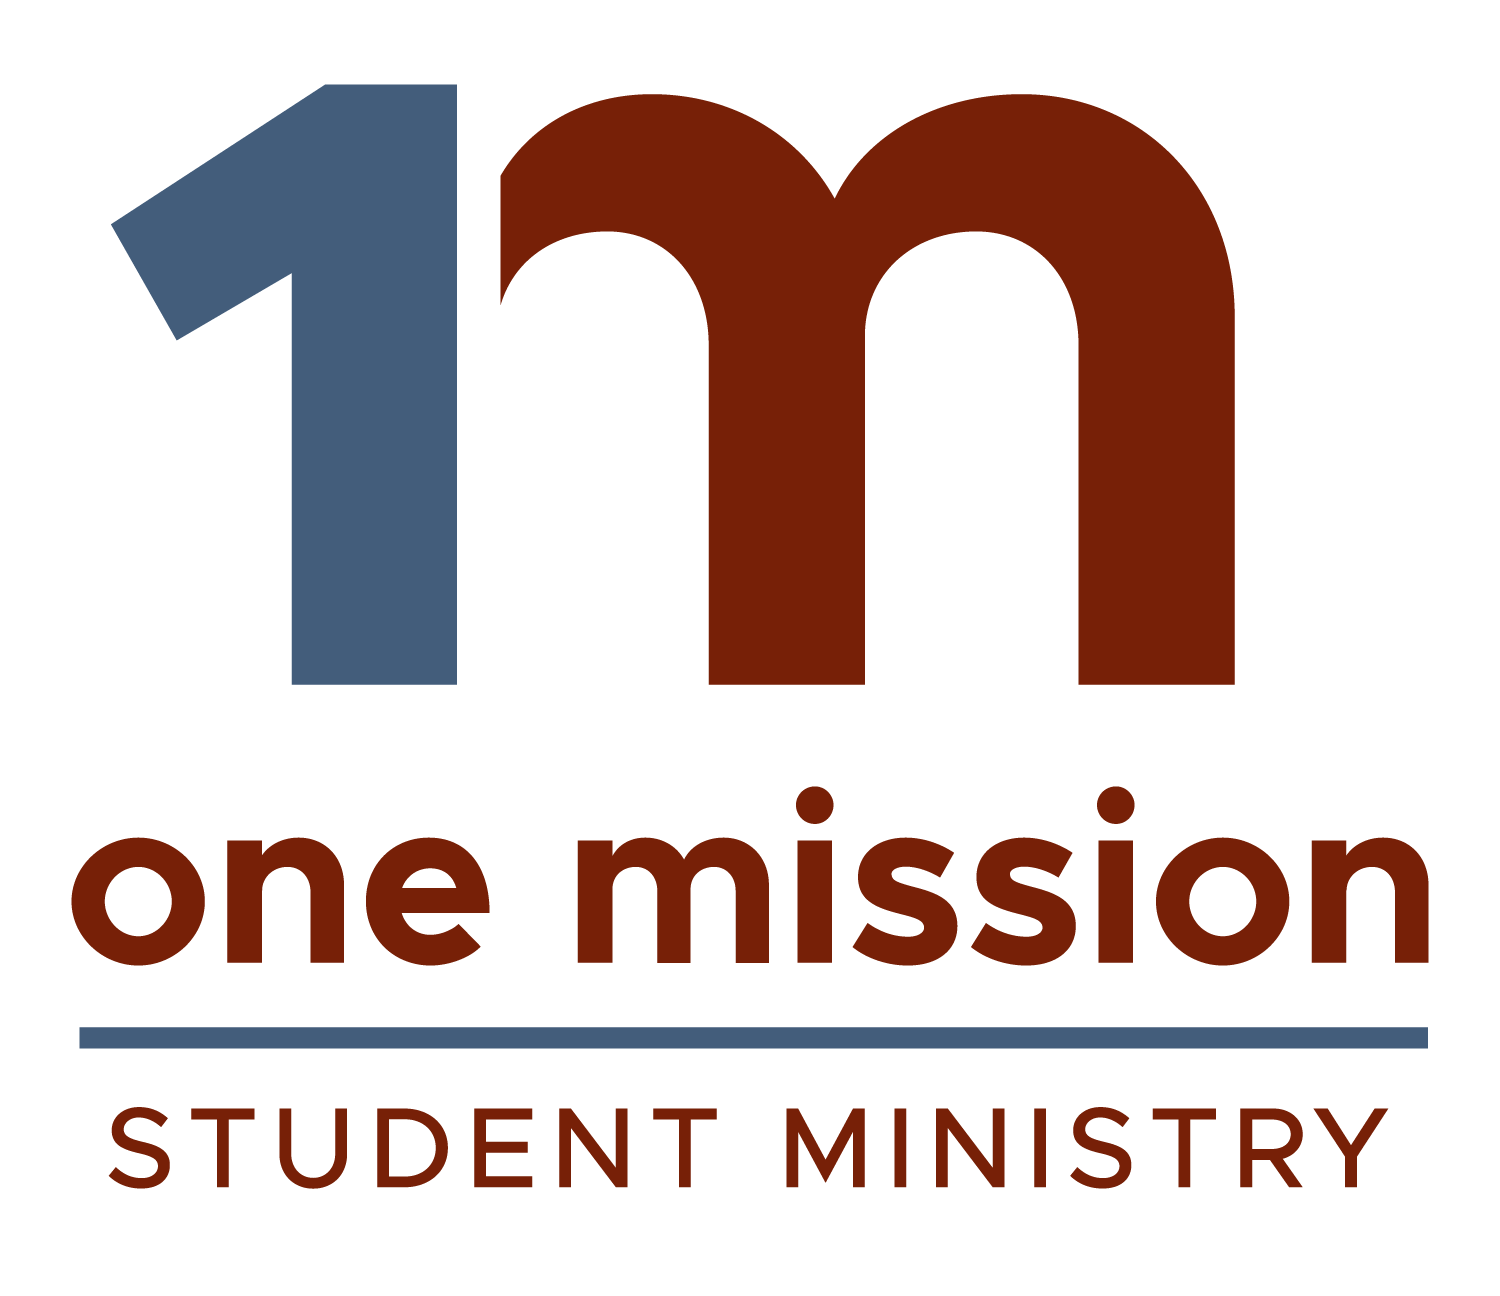 Missio Church's student ministry is committed to developing students into committed disciples of Jesus that give other students the repeated opportunity to see, hear & respond to the gospel.